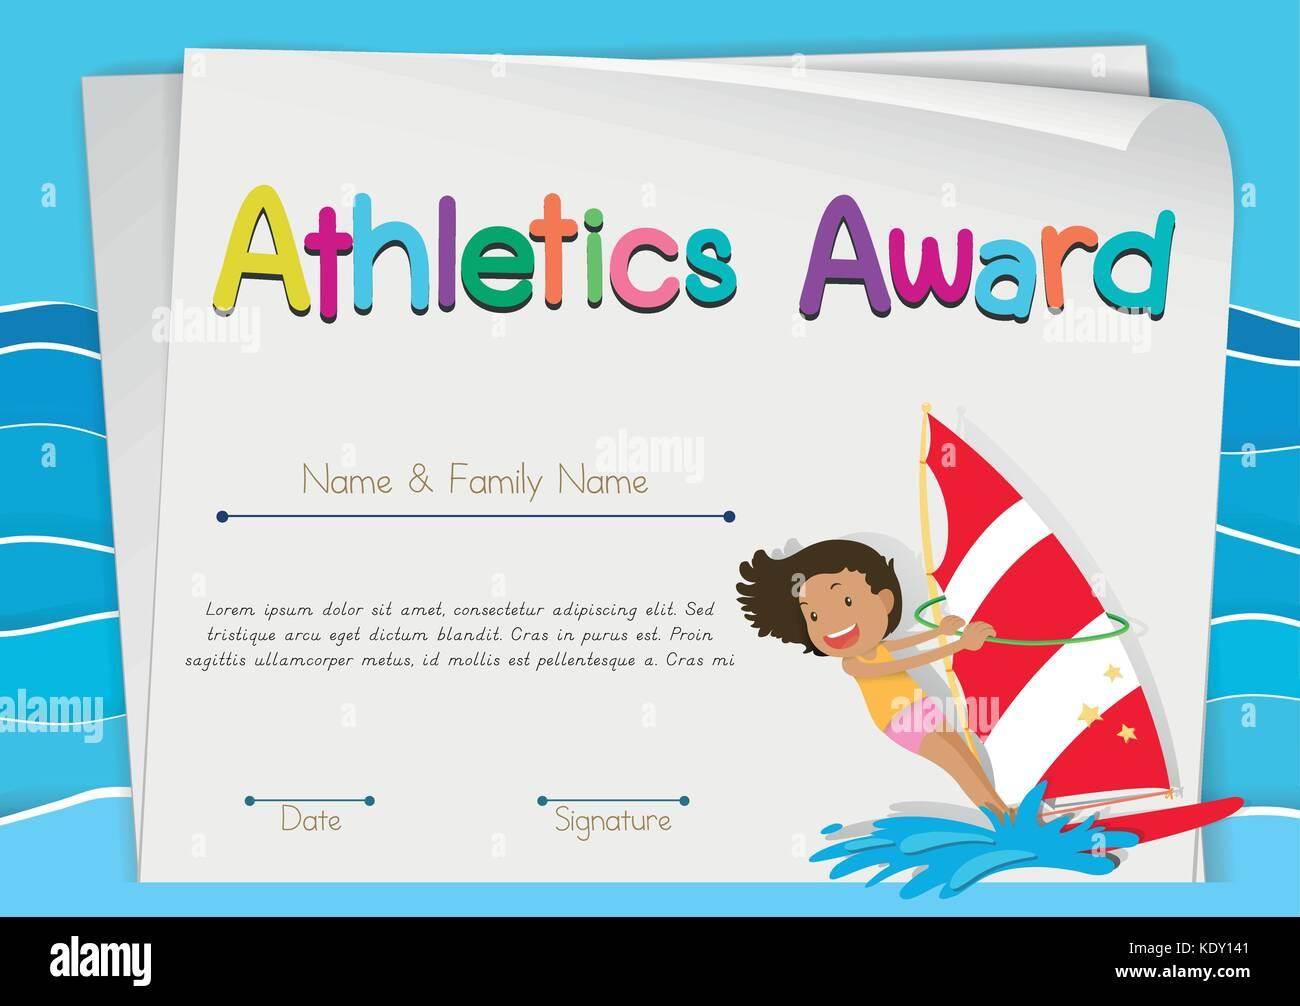 certificate template for athletics award illustration stock vector